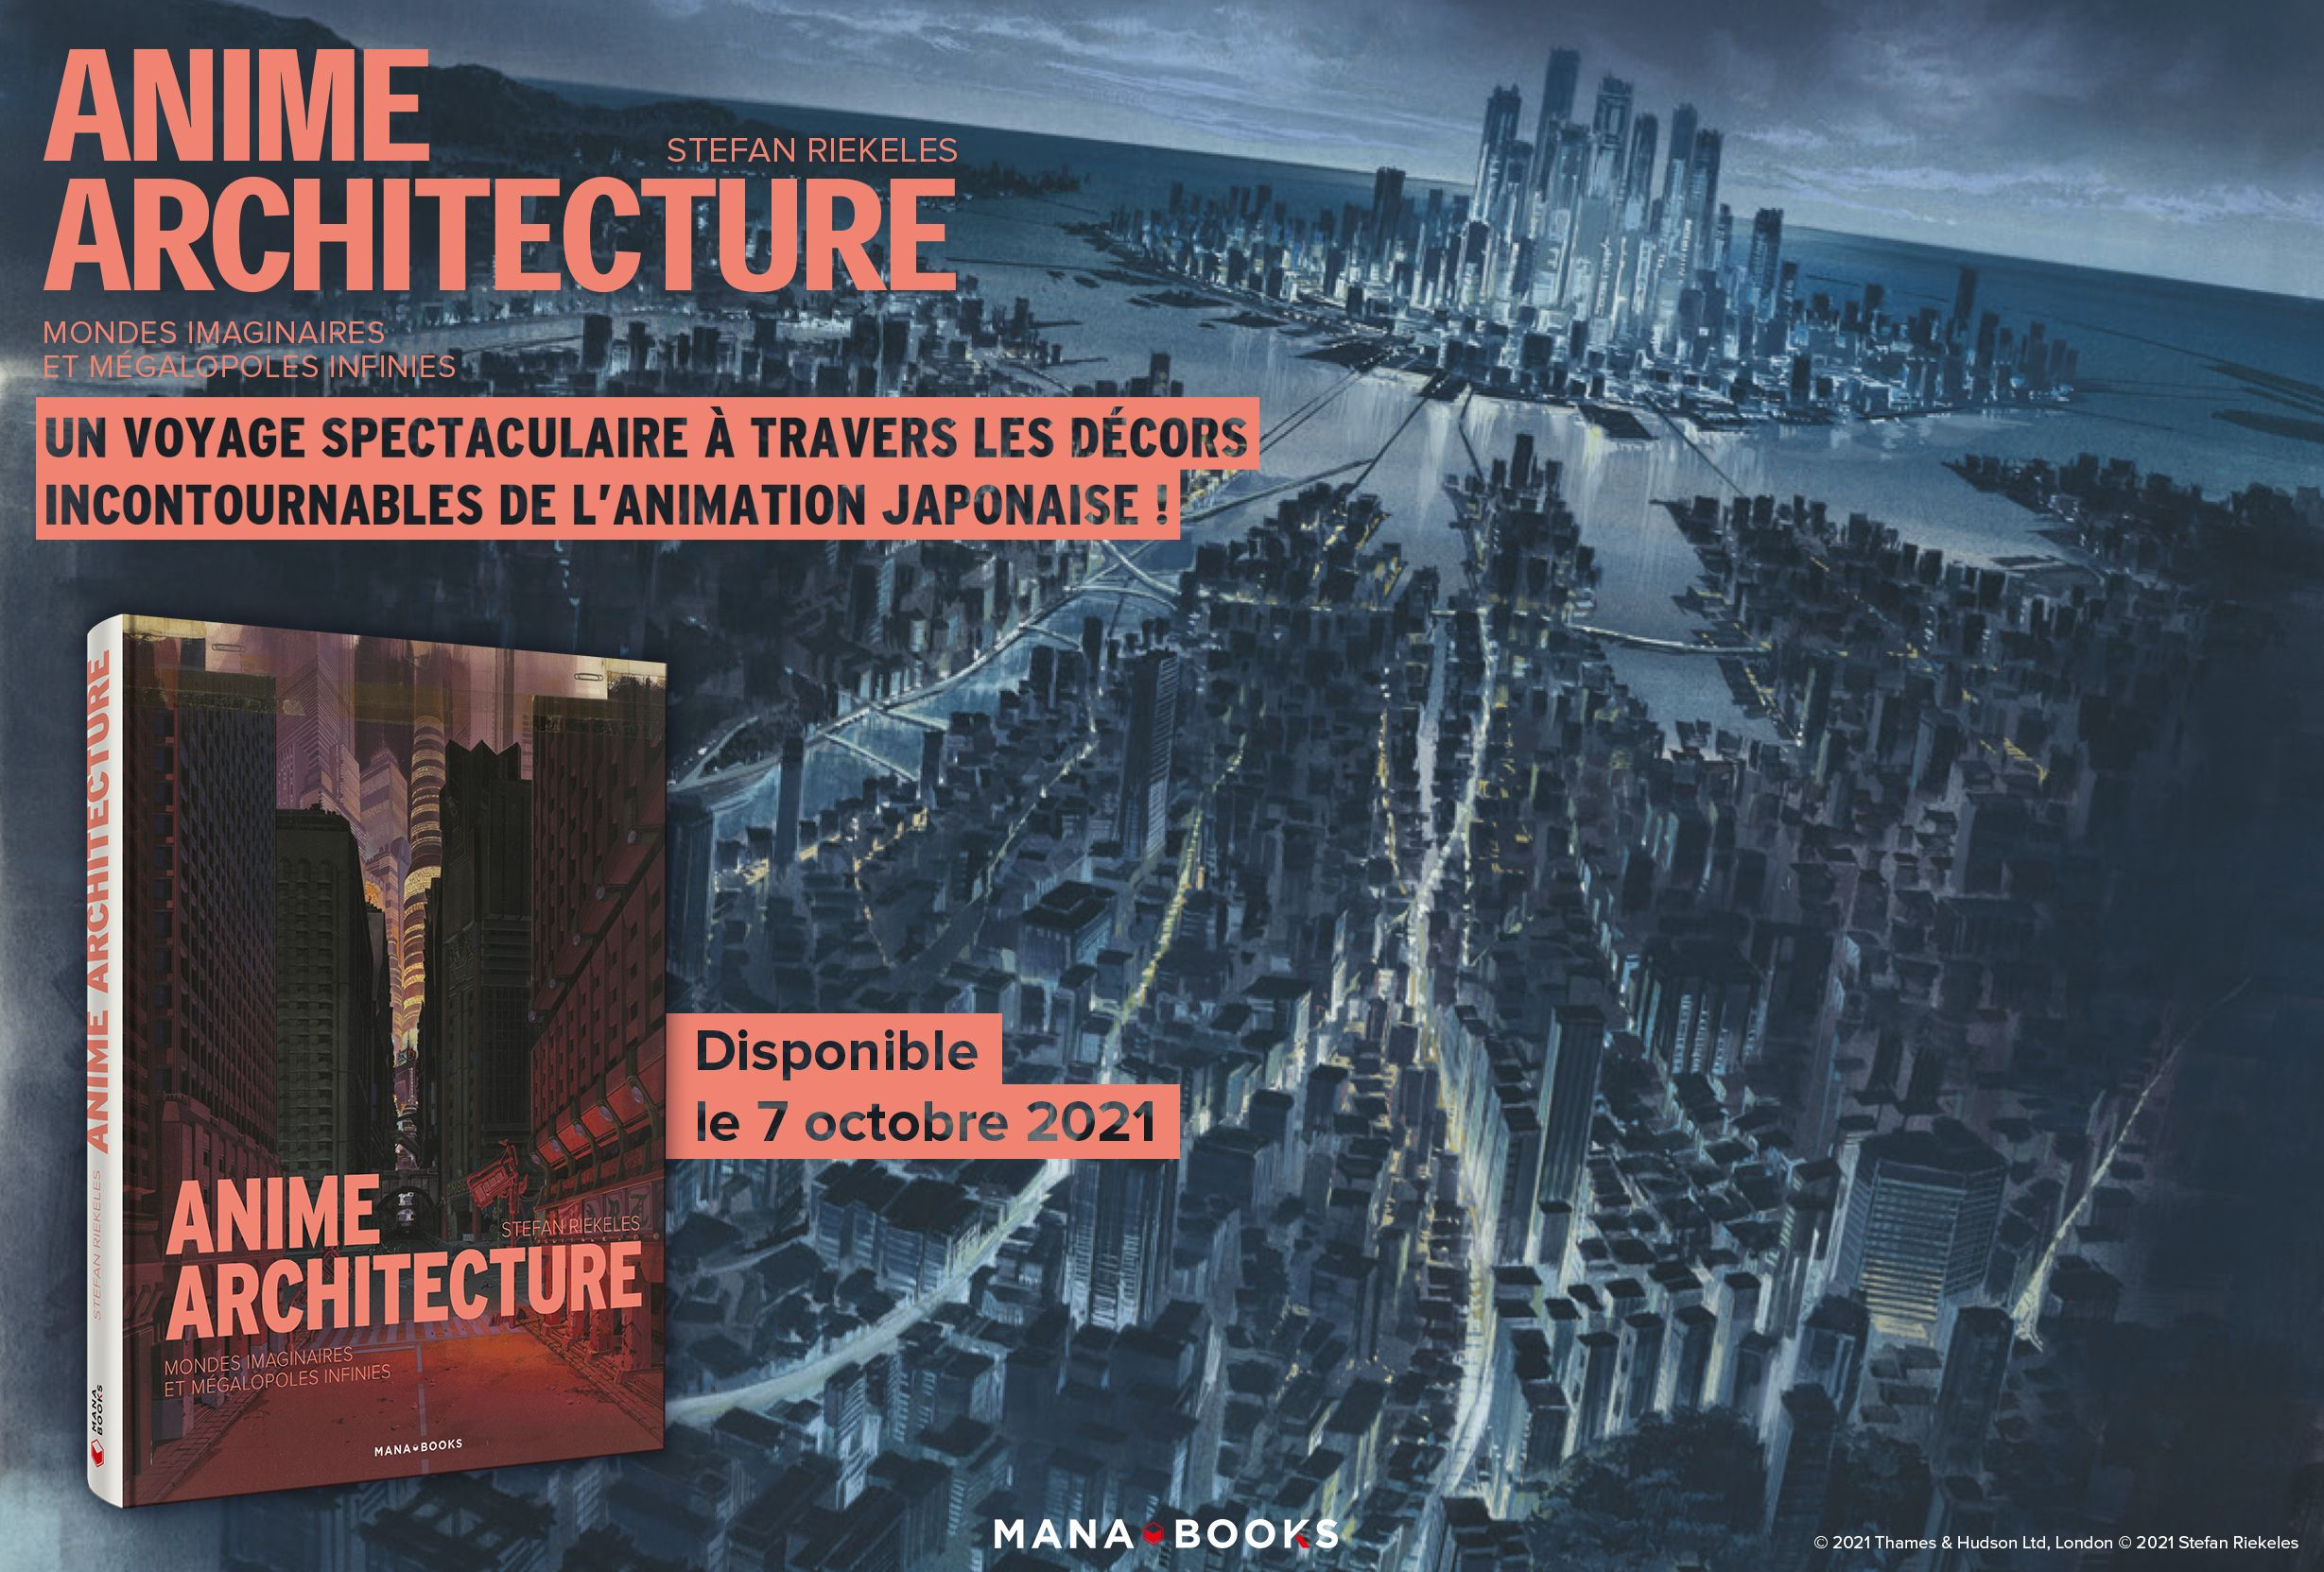 Anime_Architecture_annonce_mana.jpg